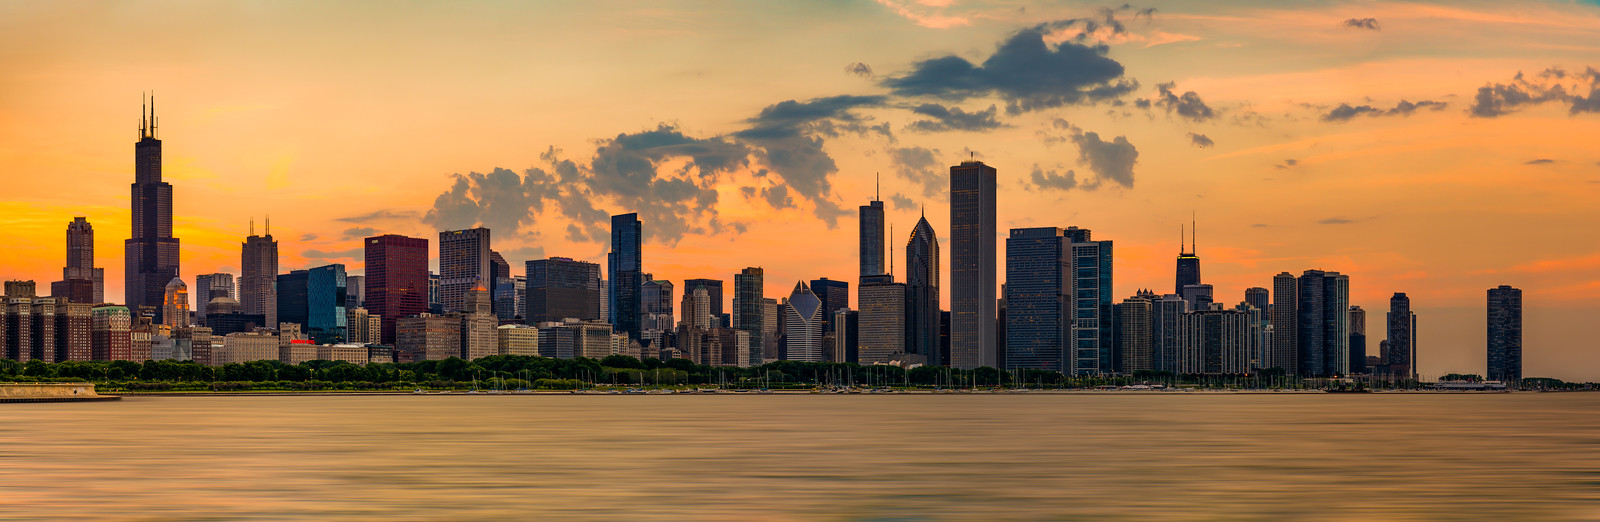 Skyline ~ Chicago